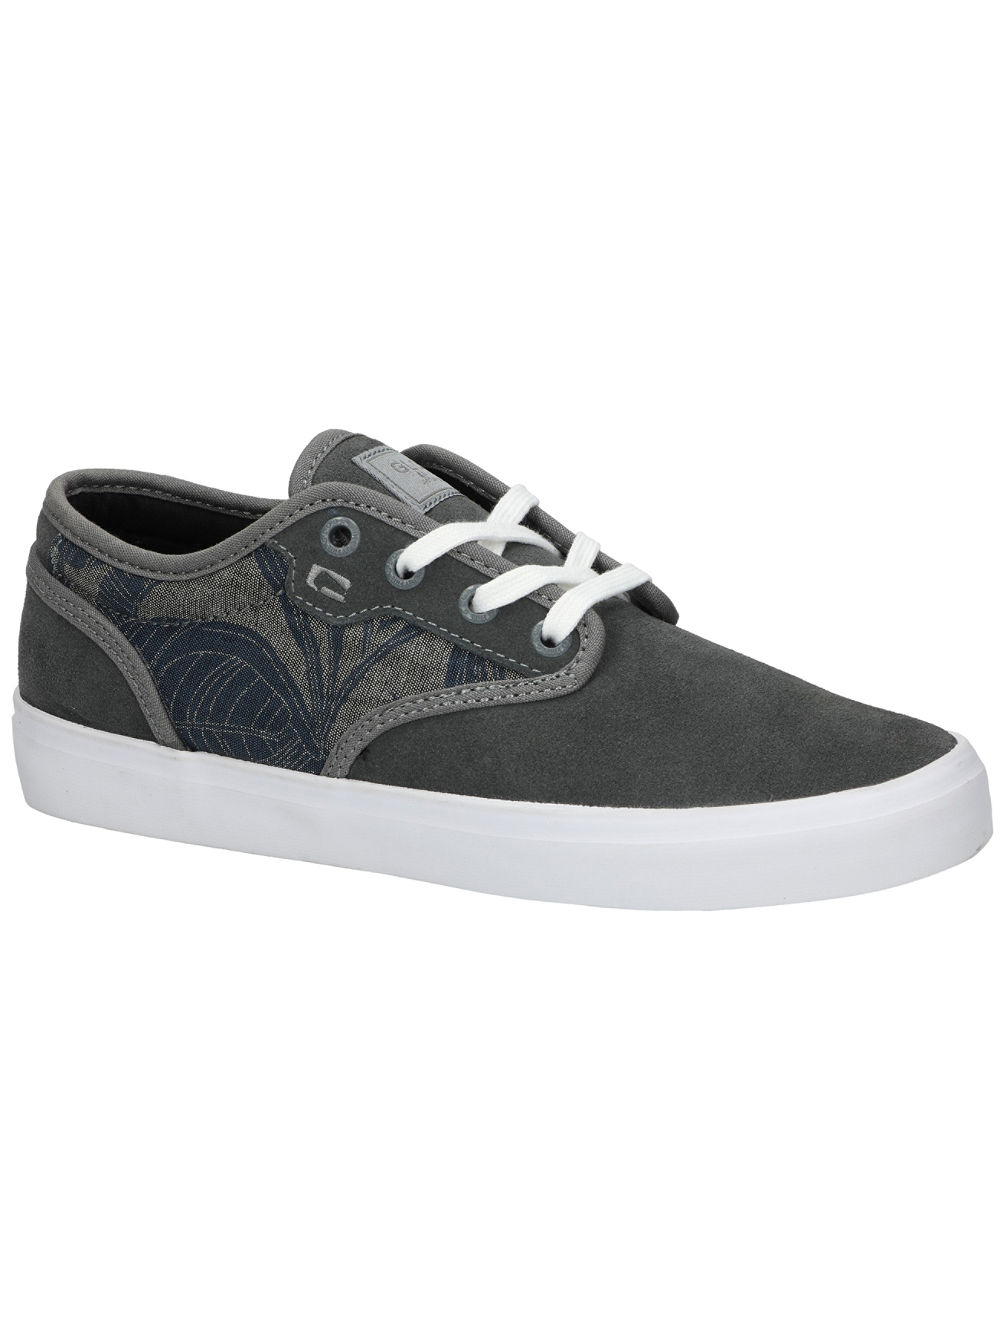 Motley Skate Shoes